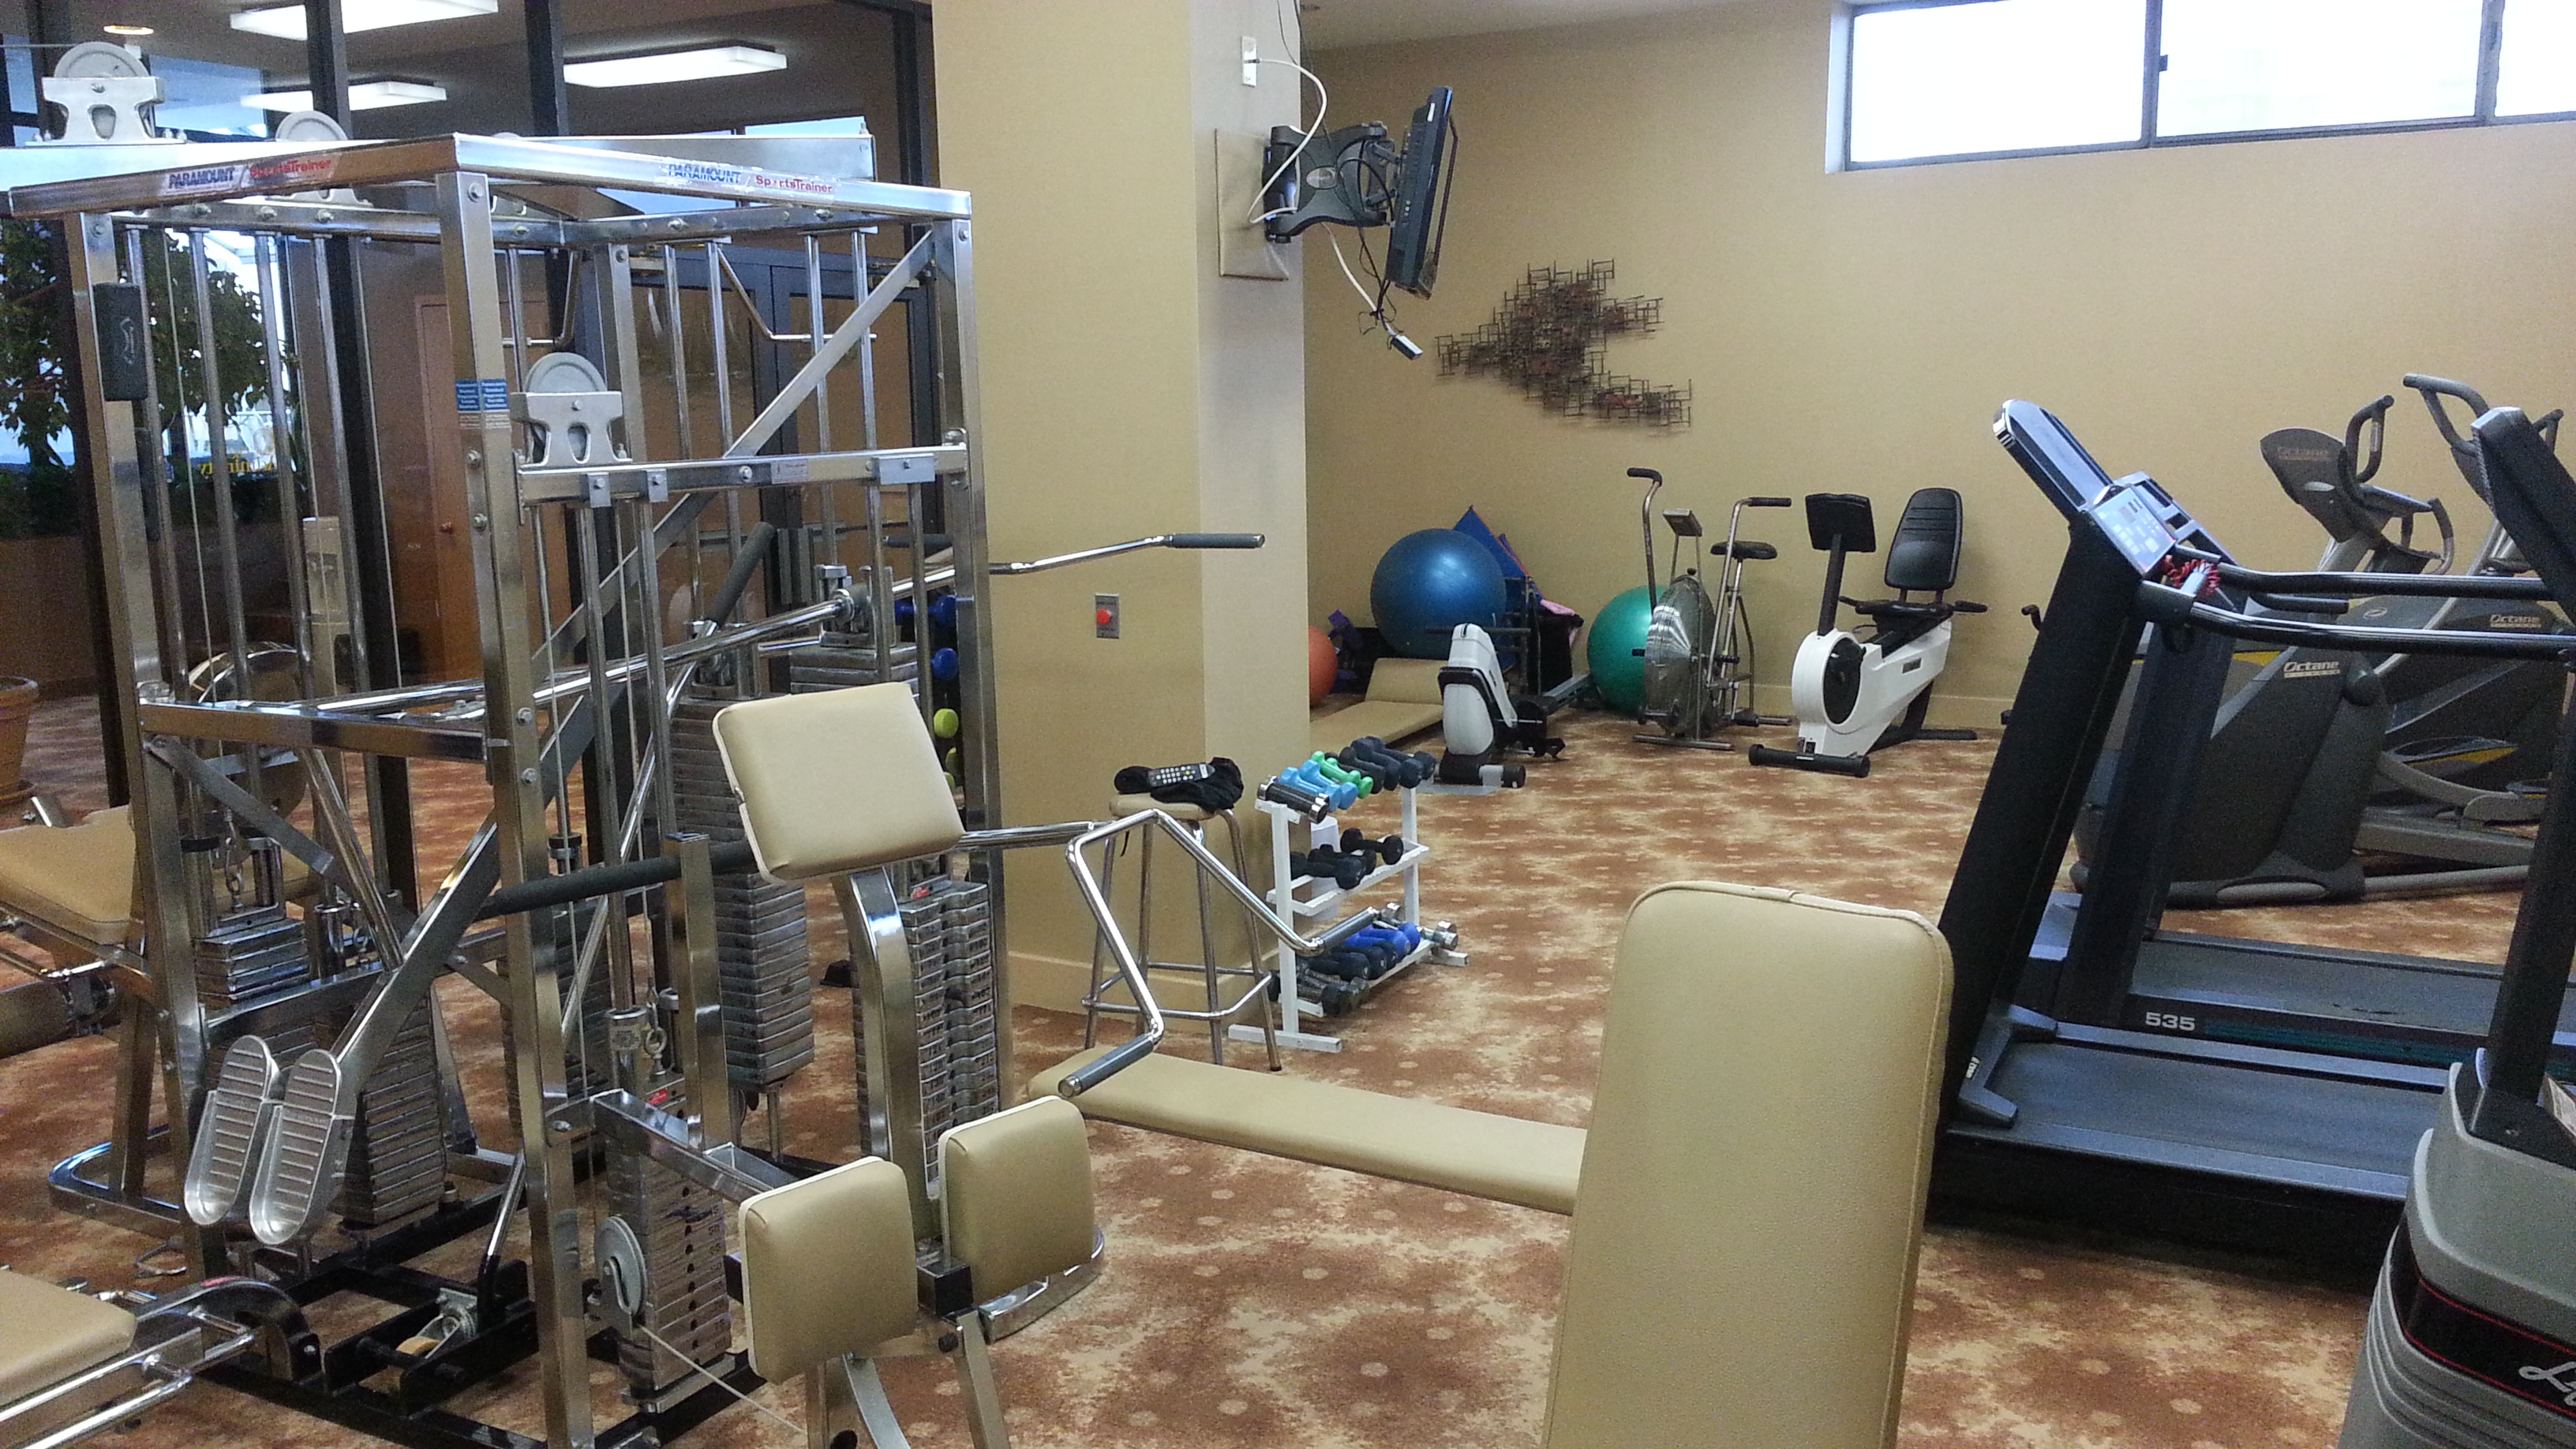 The Admiralty has this well light and equipped fitness room.